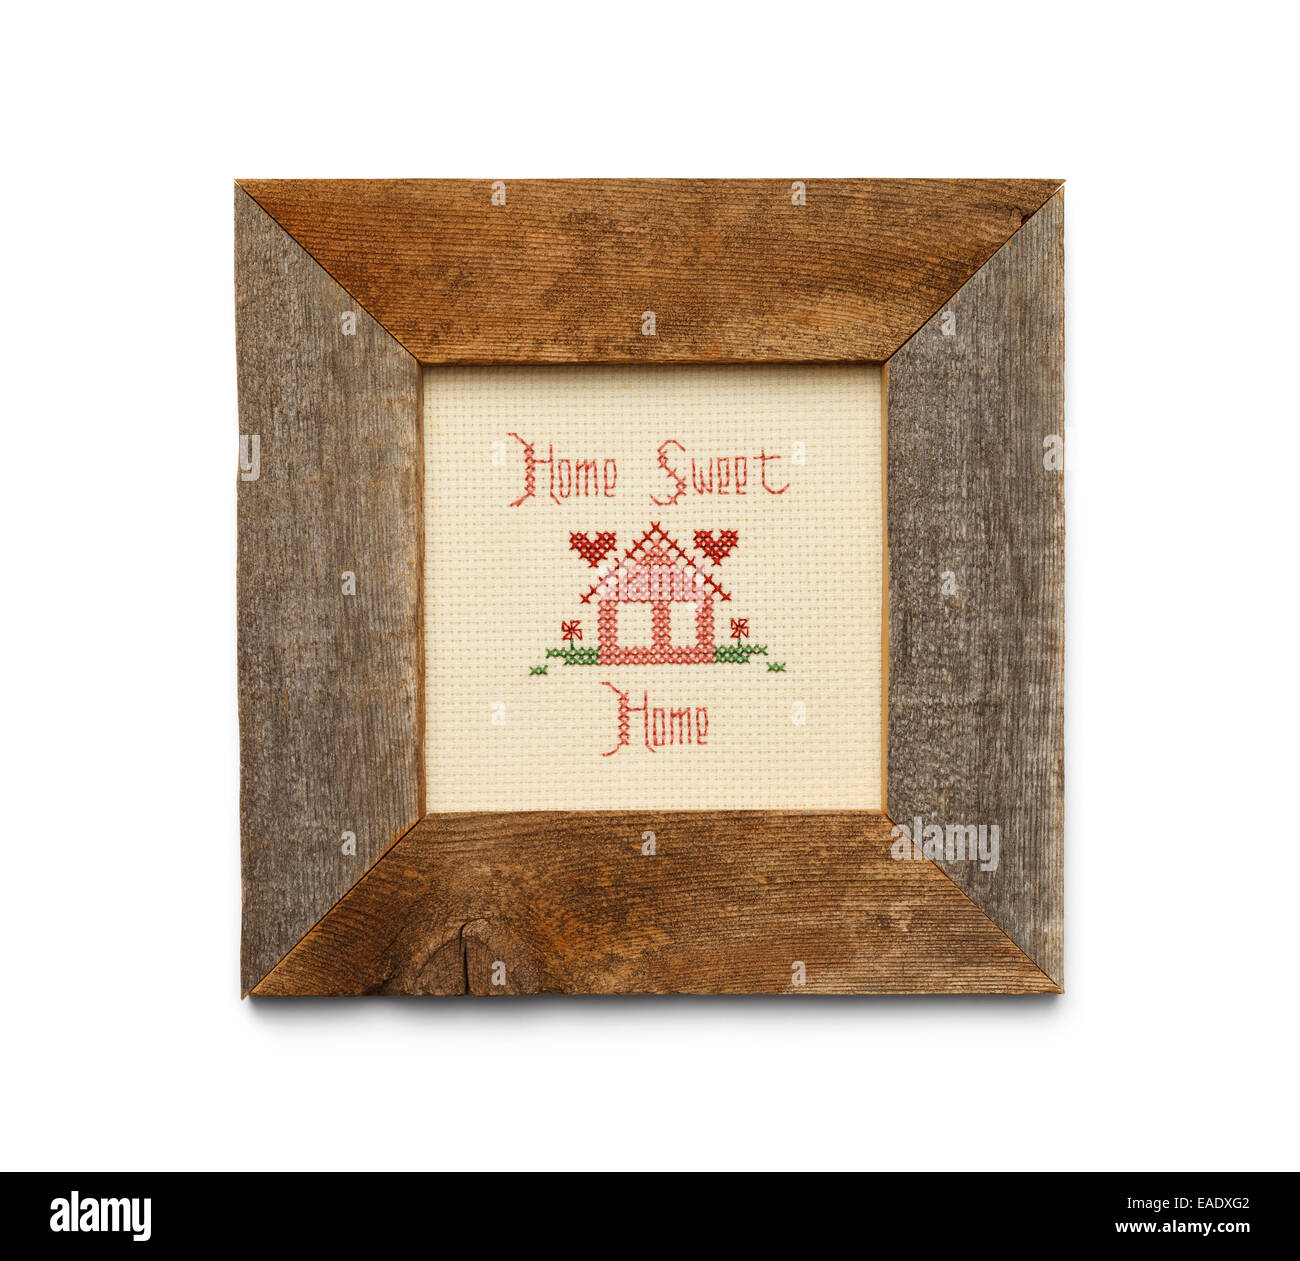 Home Sweet Home Cross Stitch in Square Wood Frame Isolated on White Background. - Stock Image